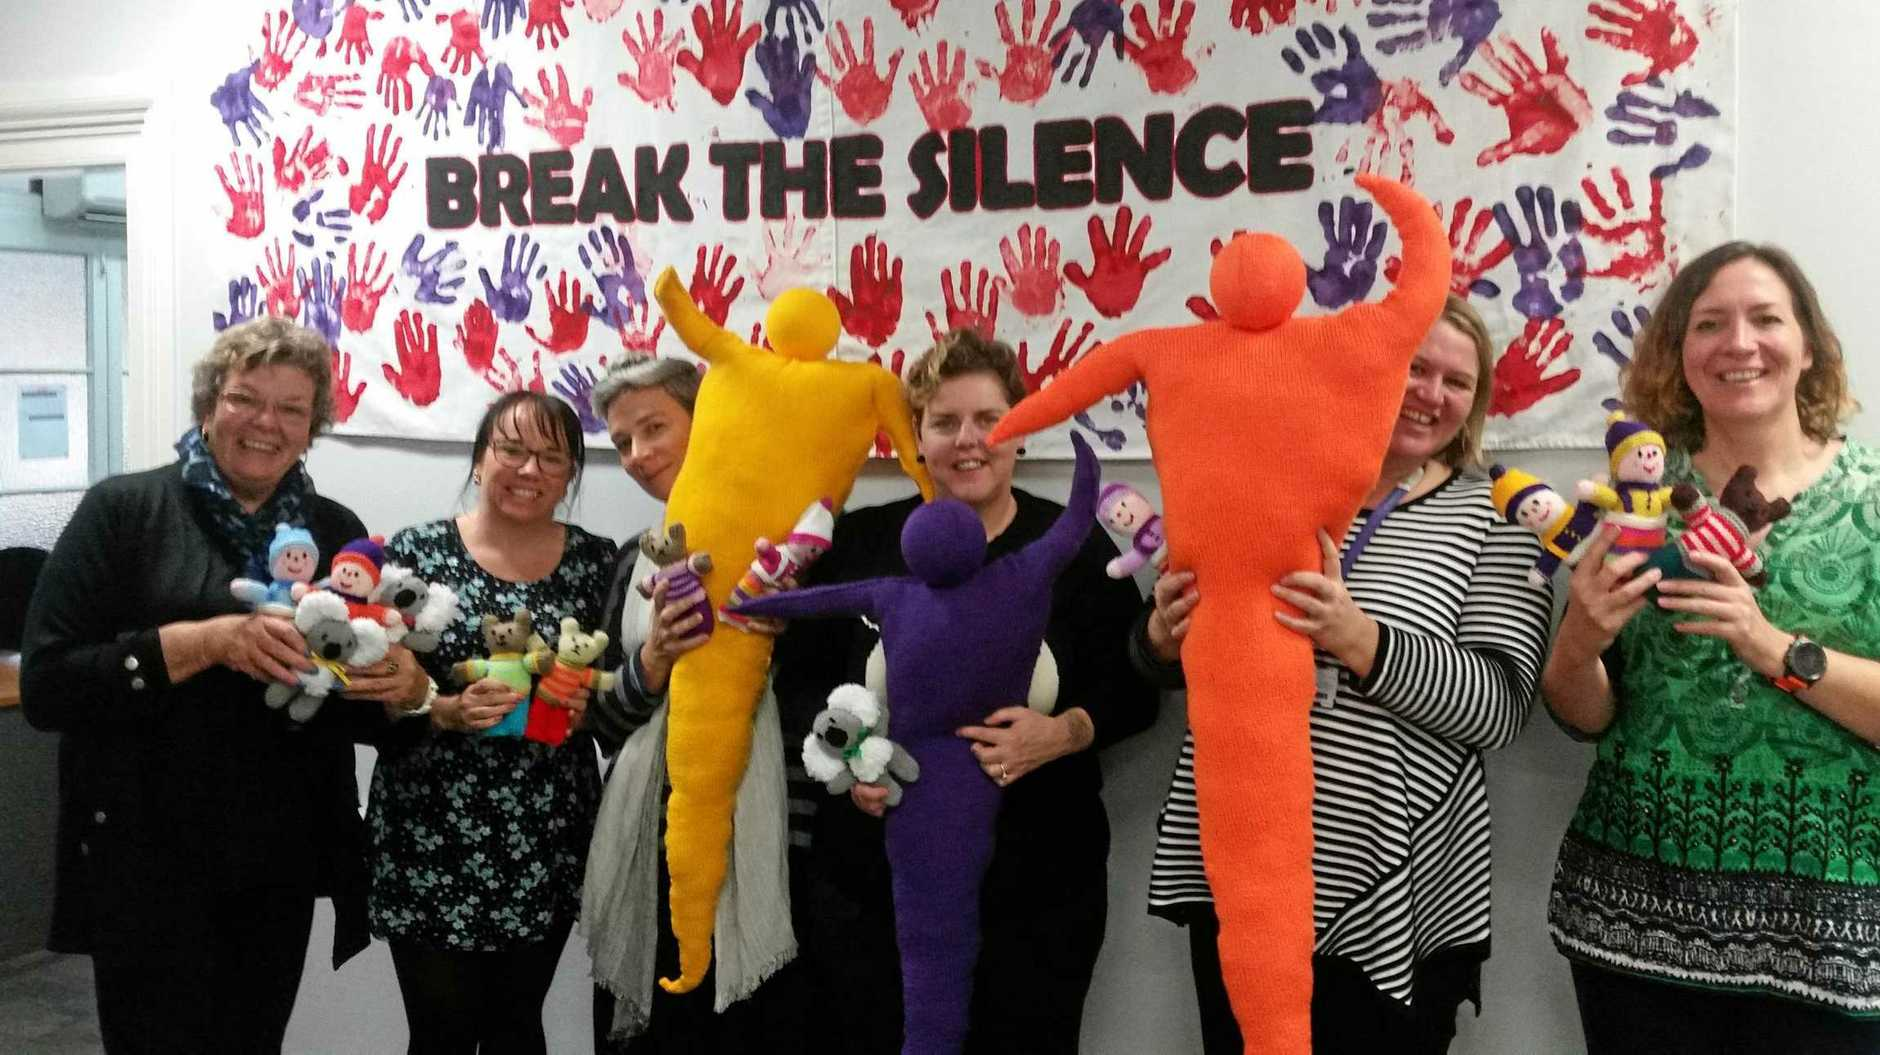 BREAK THE SILENCE: DVAC's team of volunteer knitters hope their tree jumper will encourage victims of domestic violence to seek support.